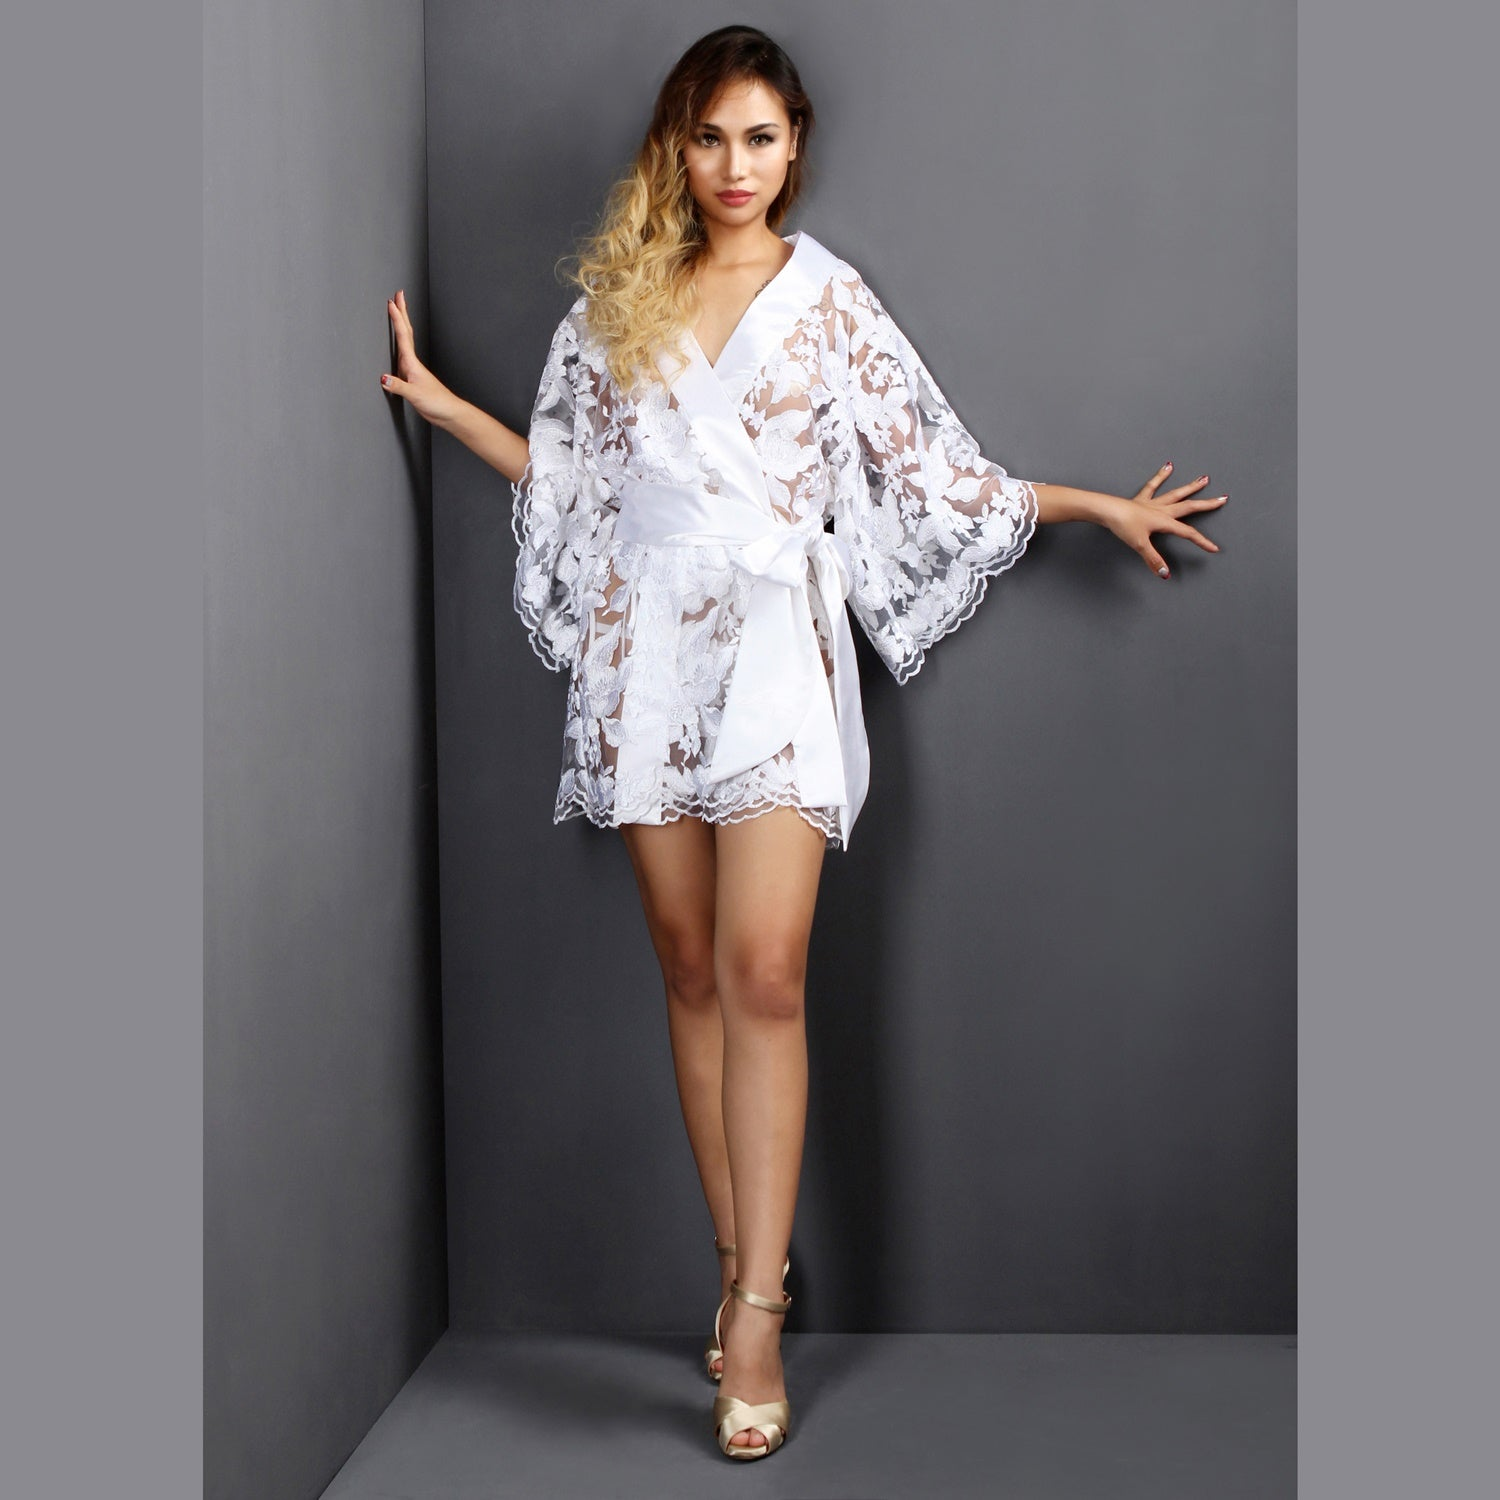 Sheer Lingerie White Lace Bridal Lingerie Dressing gown Kimono, See ...